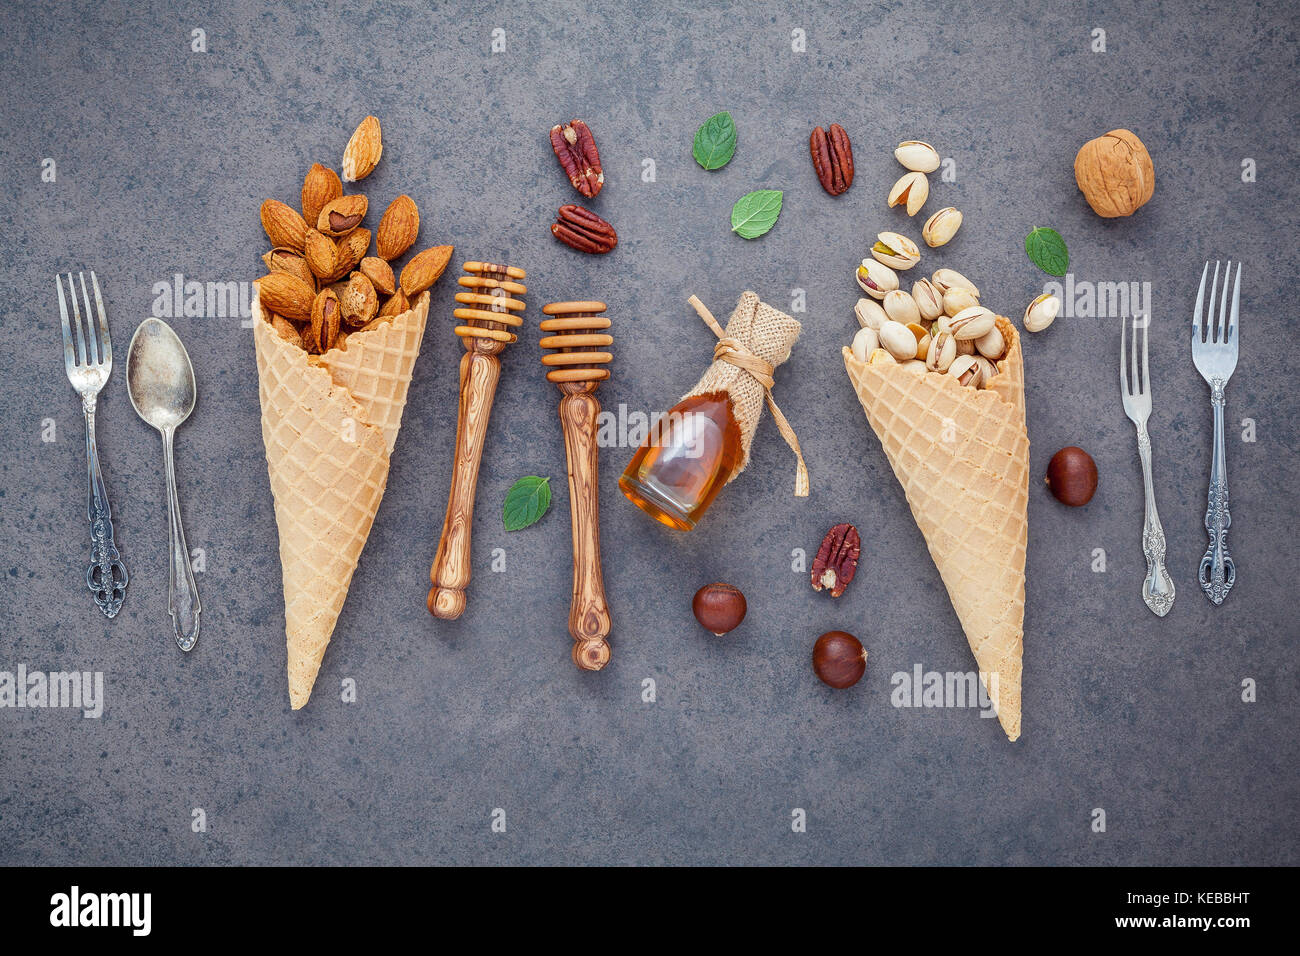 Concept for homemade various nuts ice cream. Mixed nuts in waffle cones ,metal utensils and honey dipper on  dark - Stock Image